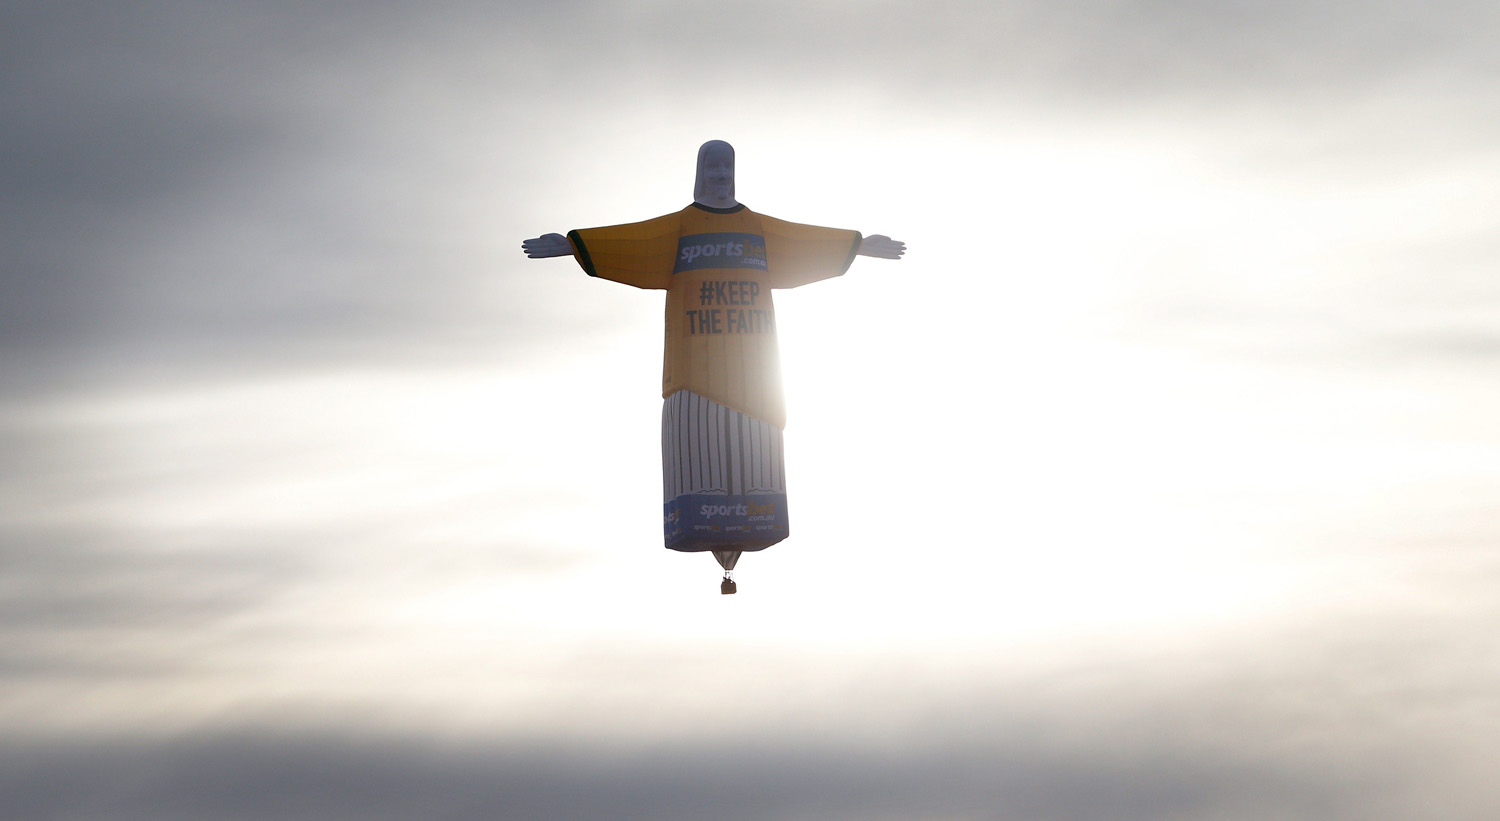 A giant hot air balloon in the shape of Brazils Christ The Redeemer statue wears an Australian football jersey flying over the Sydney skyline in support of the Australian team ahead of the 2014 World Cup in Brazil.